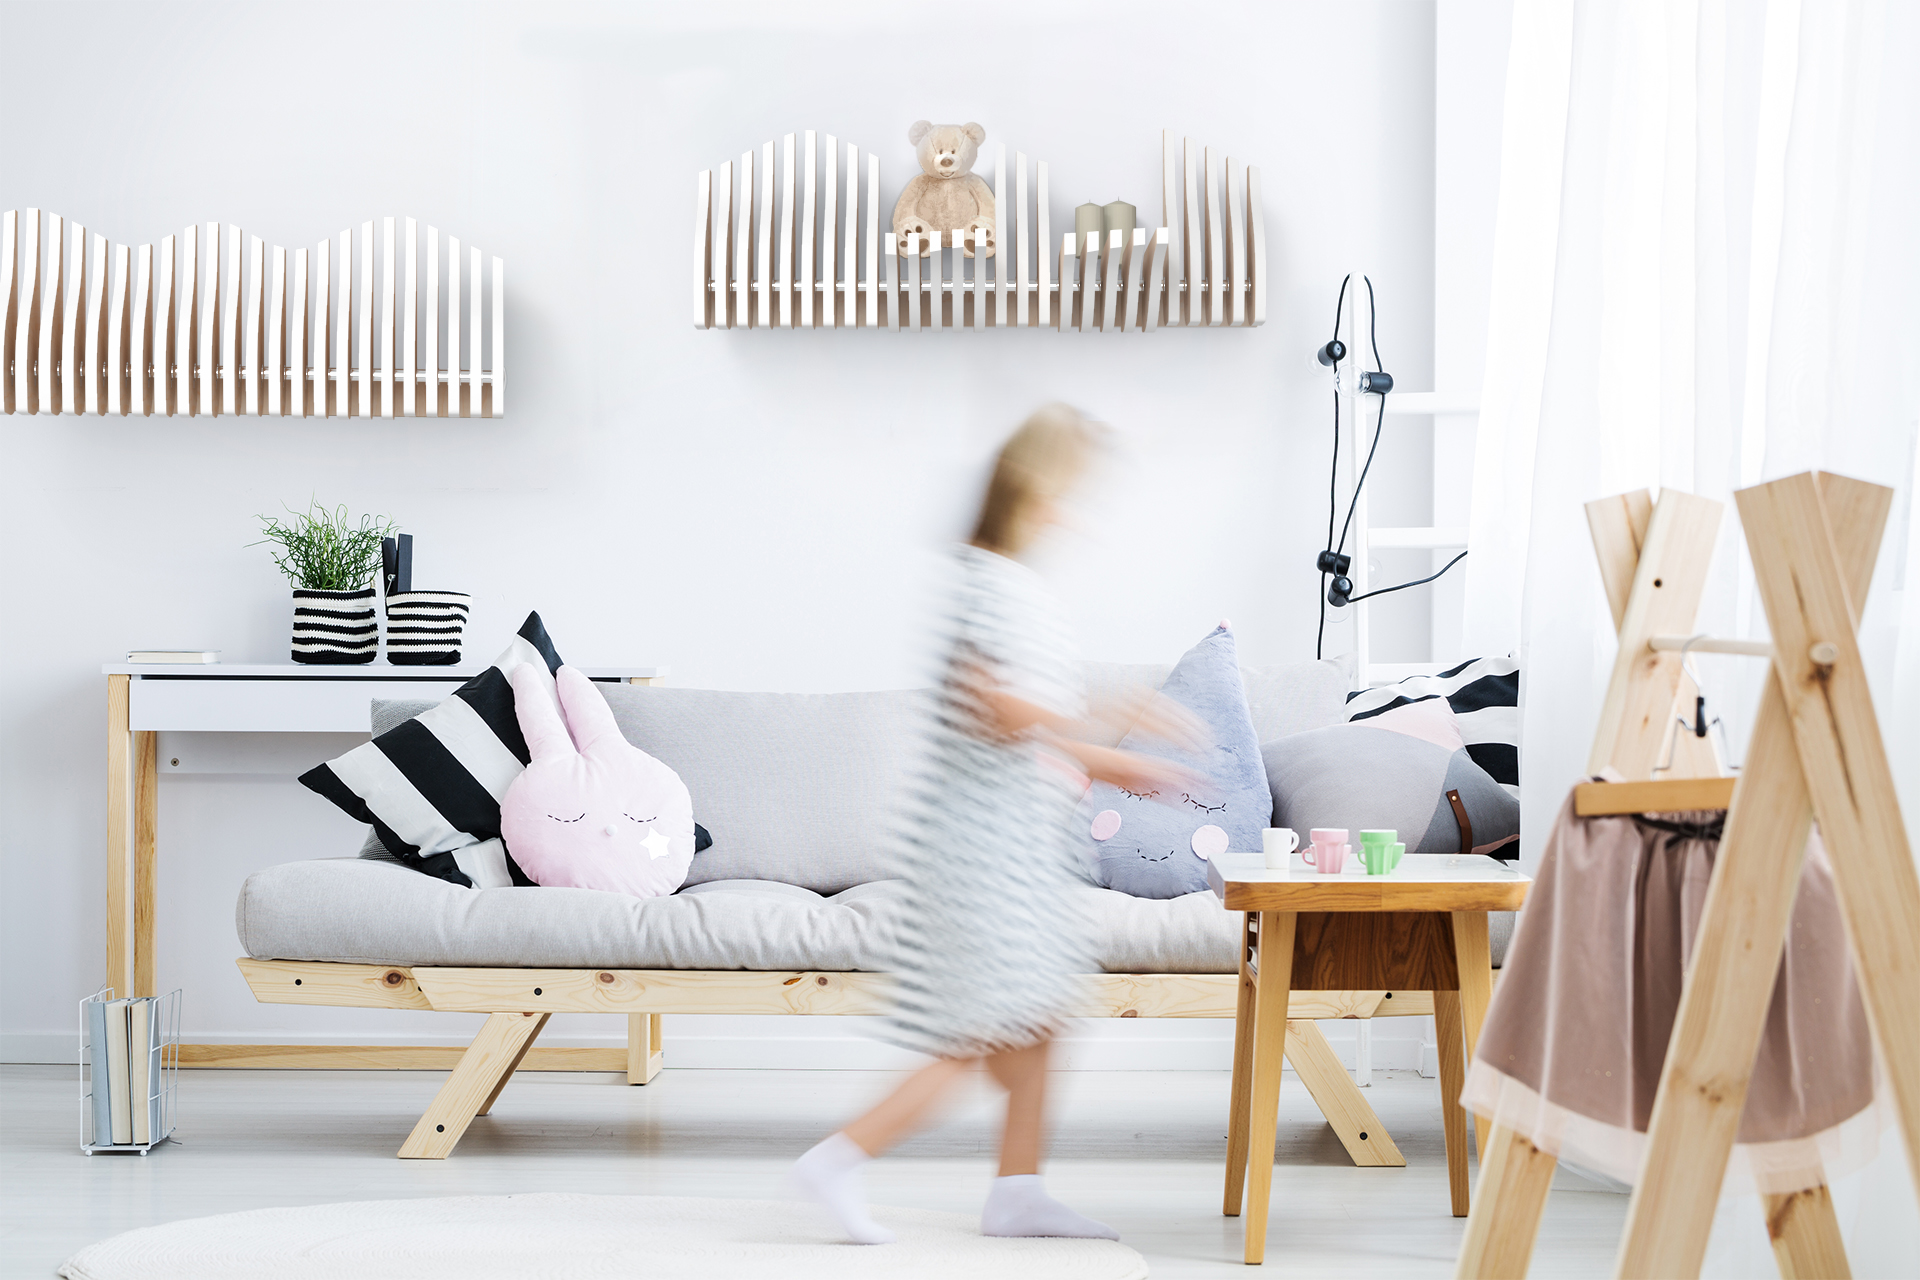 Köllen One is a modular and interactive shelf with a versatile essence allows it to furnish all kinds of spaces.